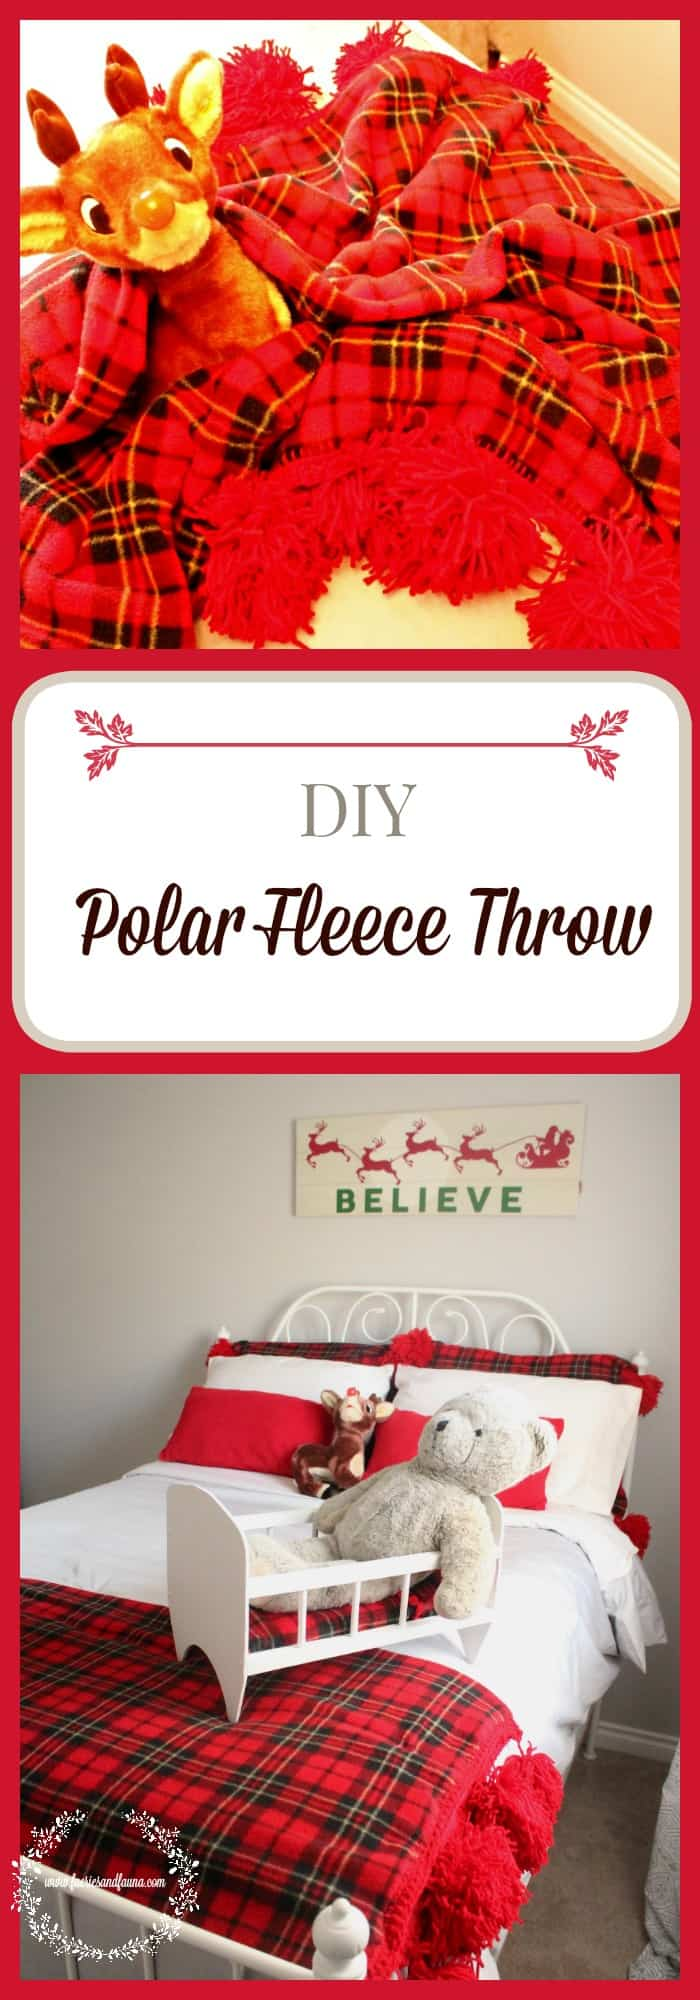 Christmas, DIY, Sewing, Crafts,